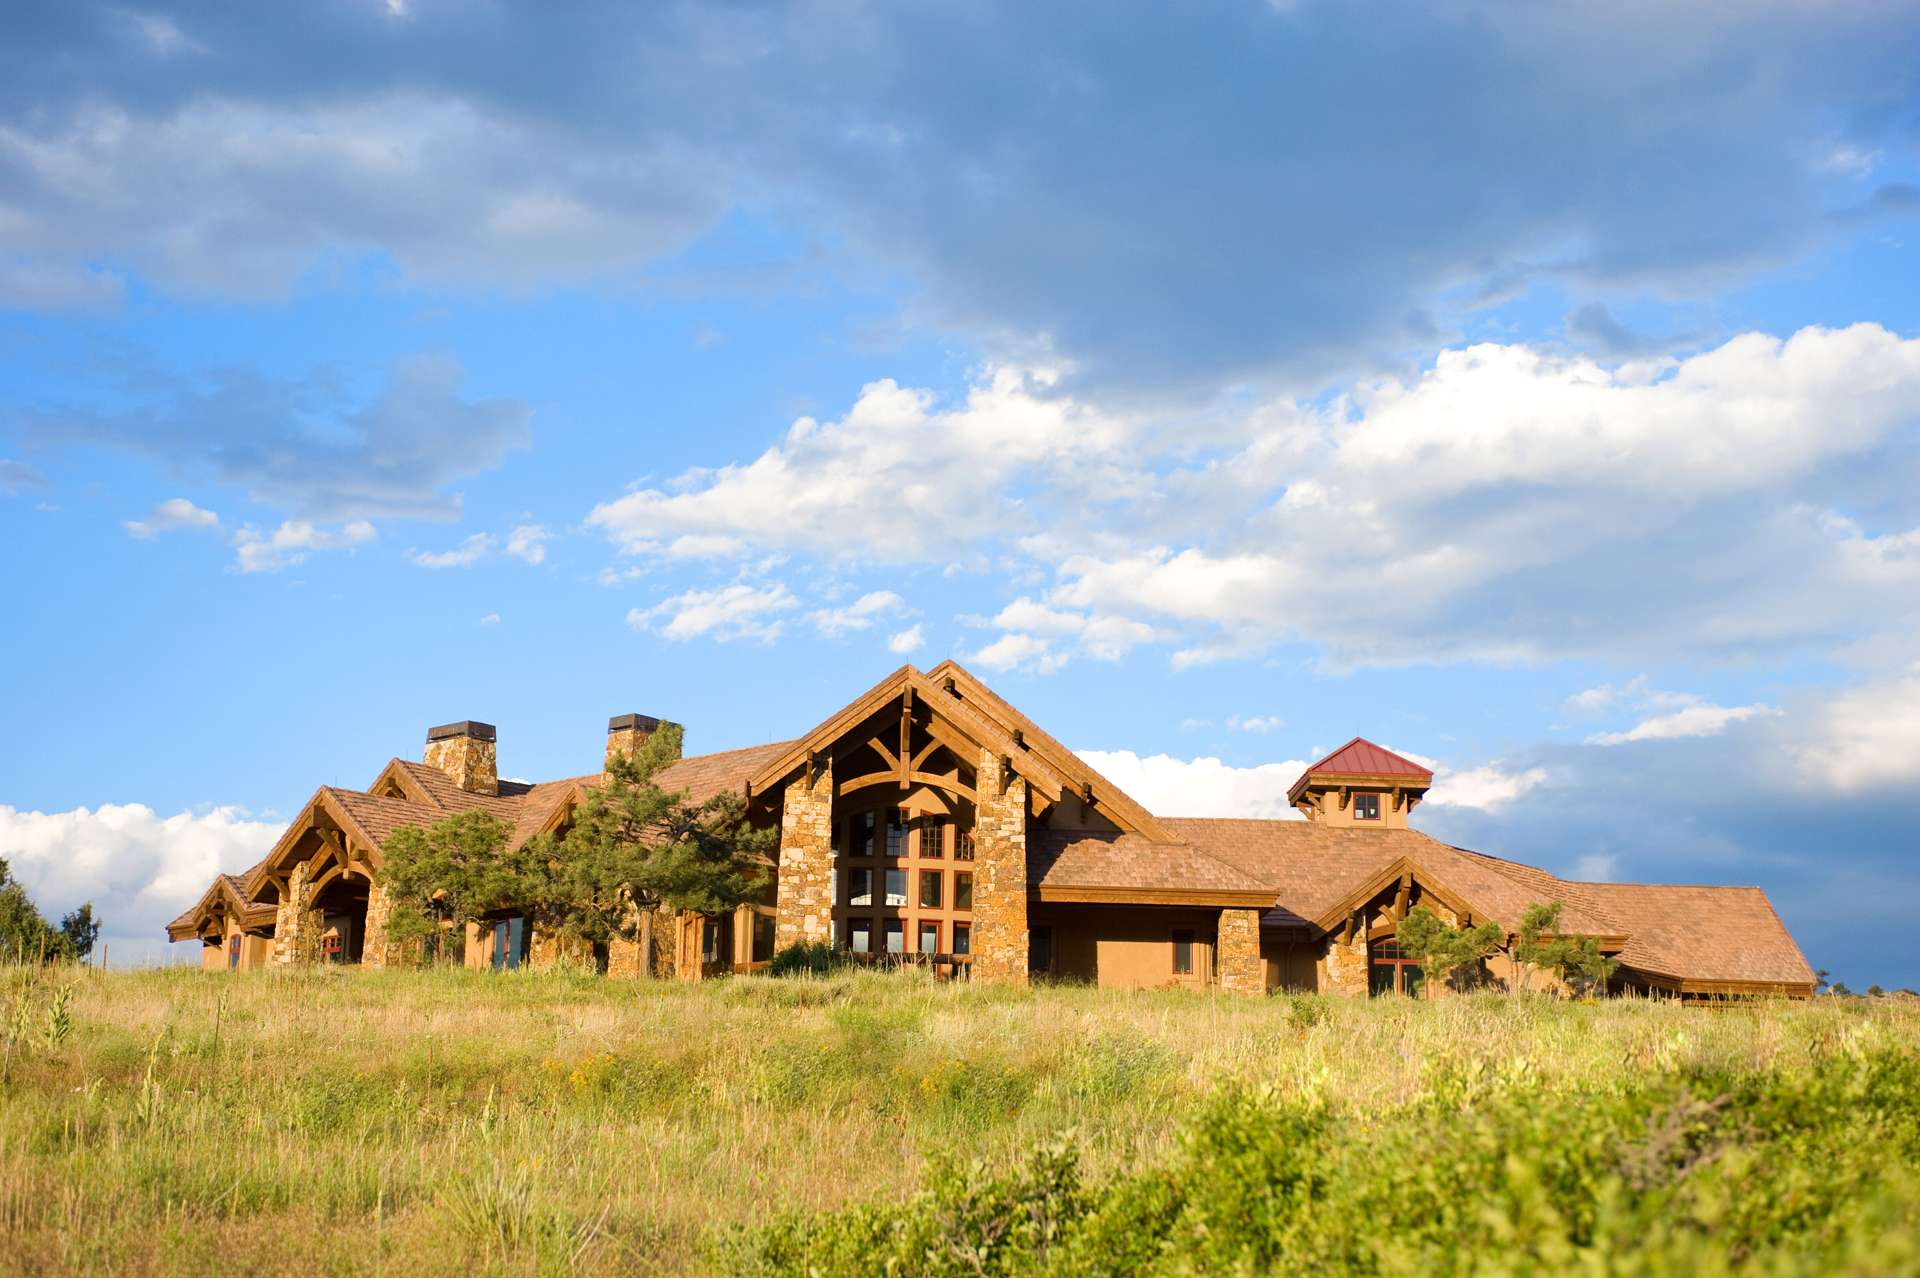 Colorado dream home dream homes pagosa springs colorado for Colorado dream home